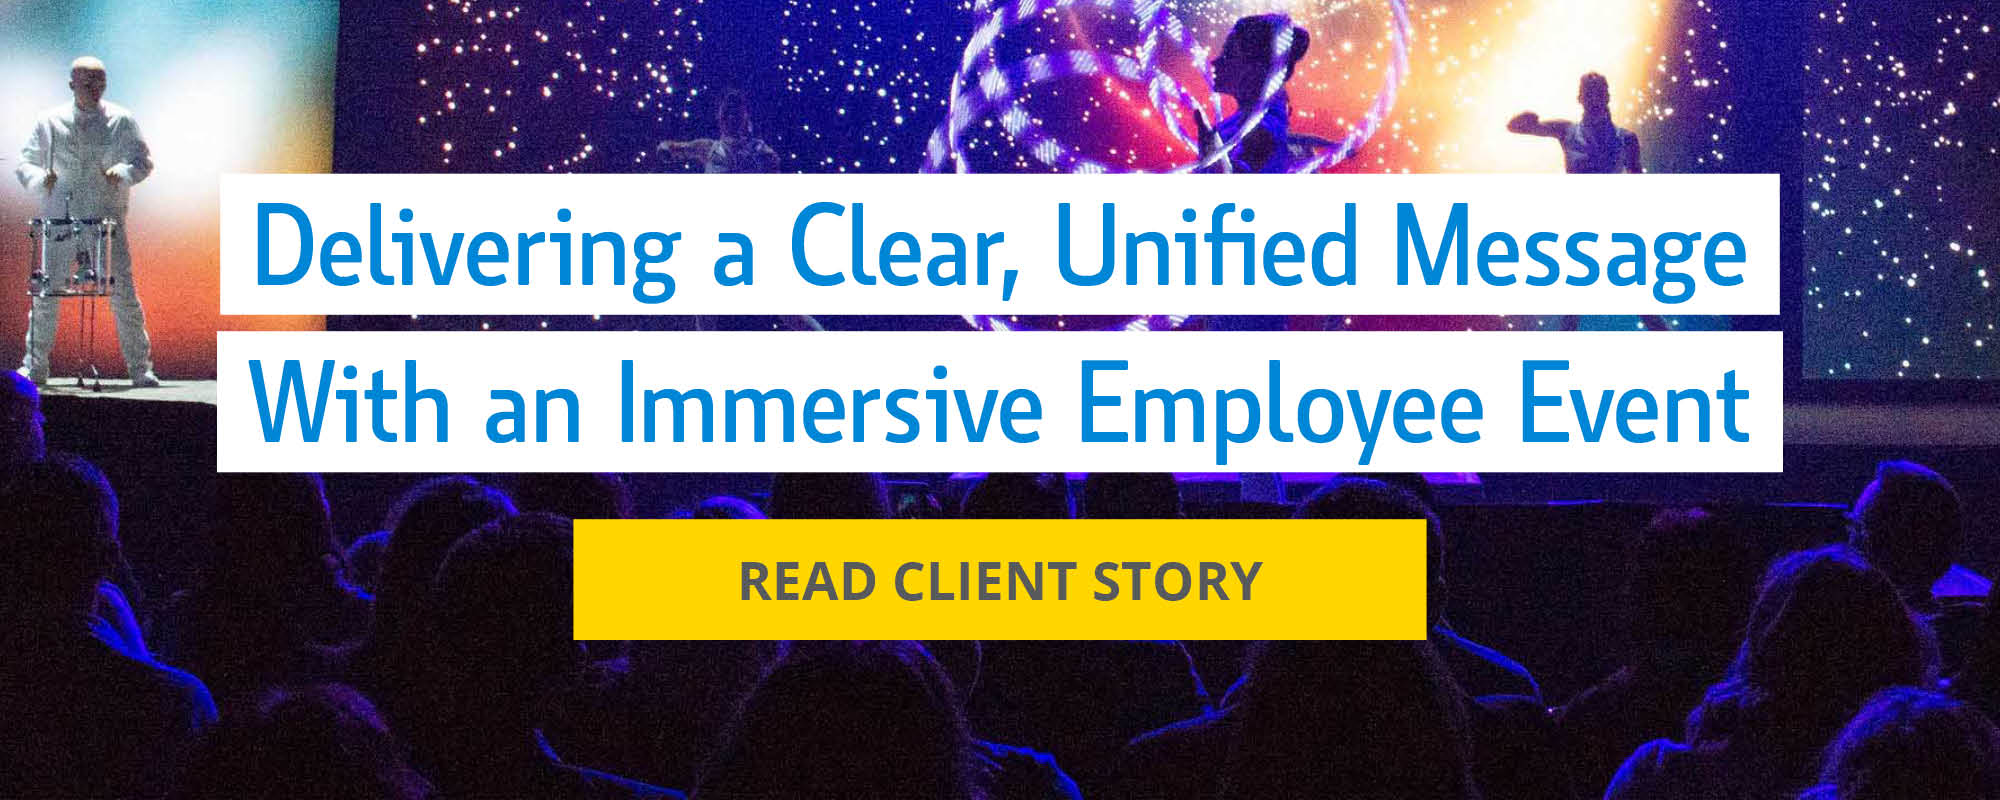 Delivering a clear, unified message with an immersive employee event. Read client story.